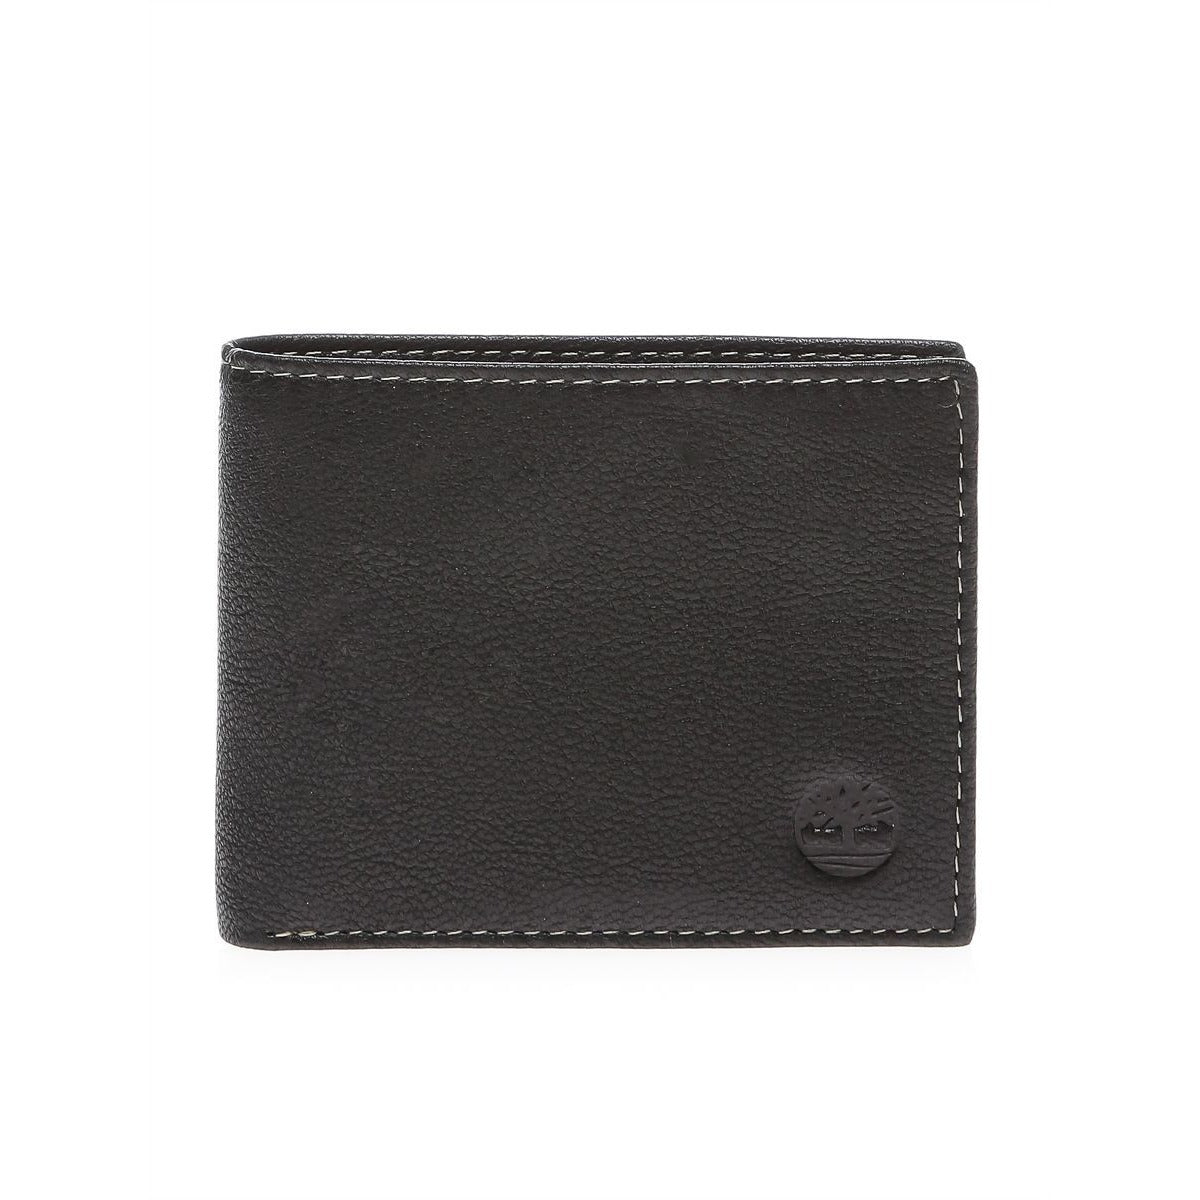 Timberland D10218 Men's Blix Wallet